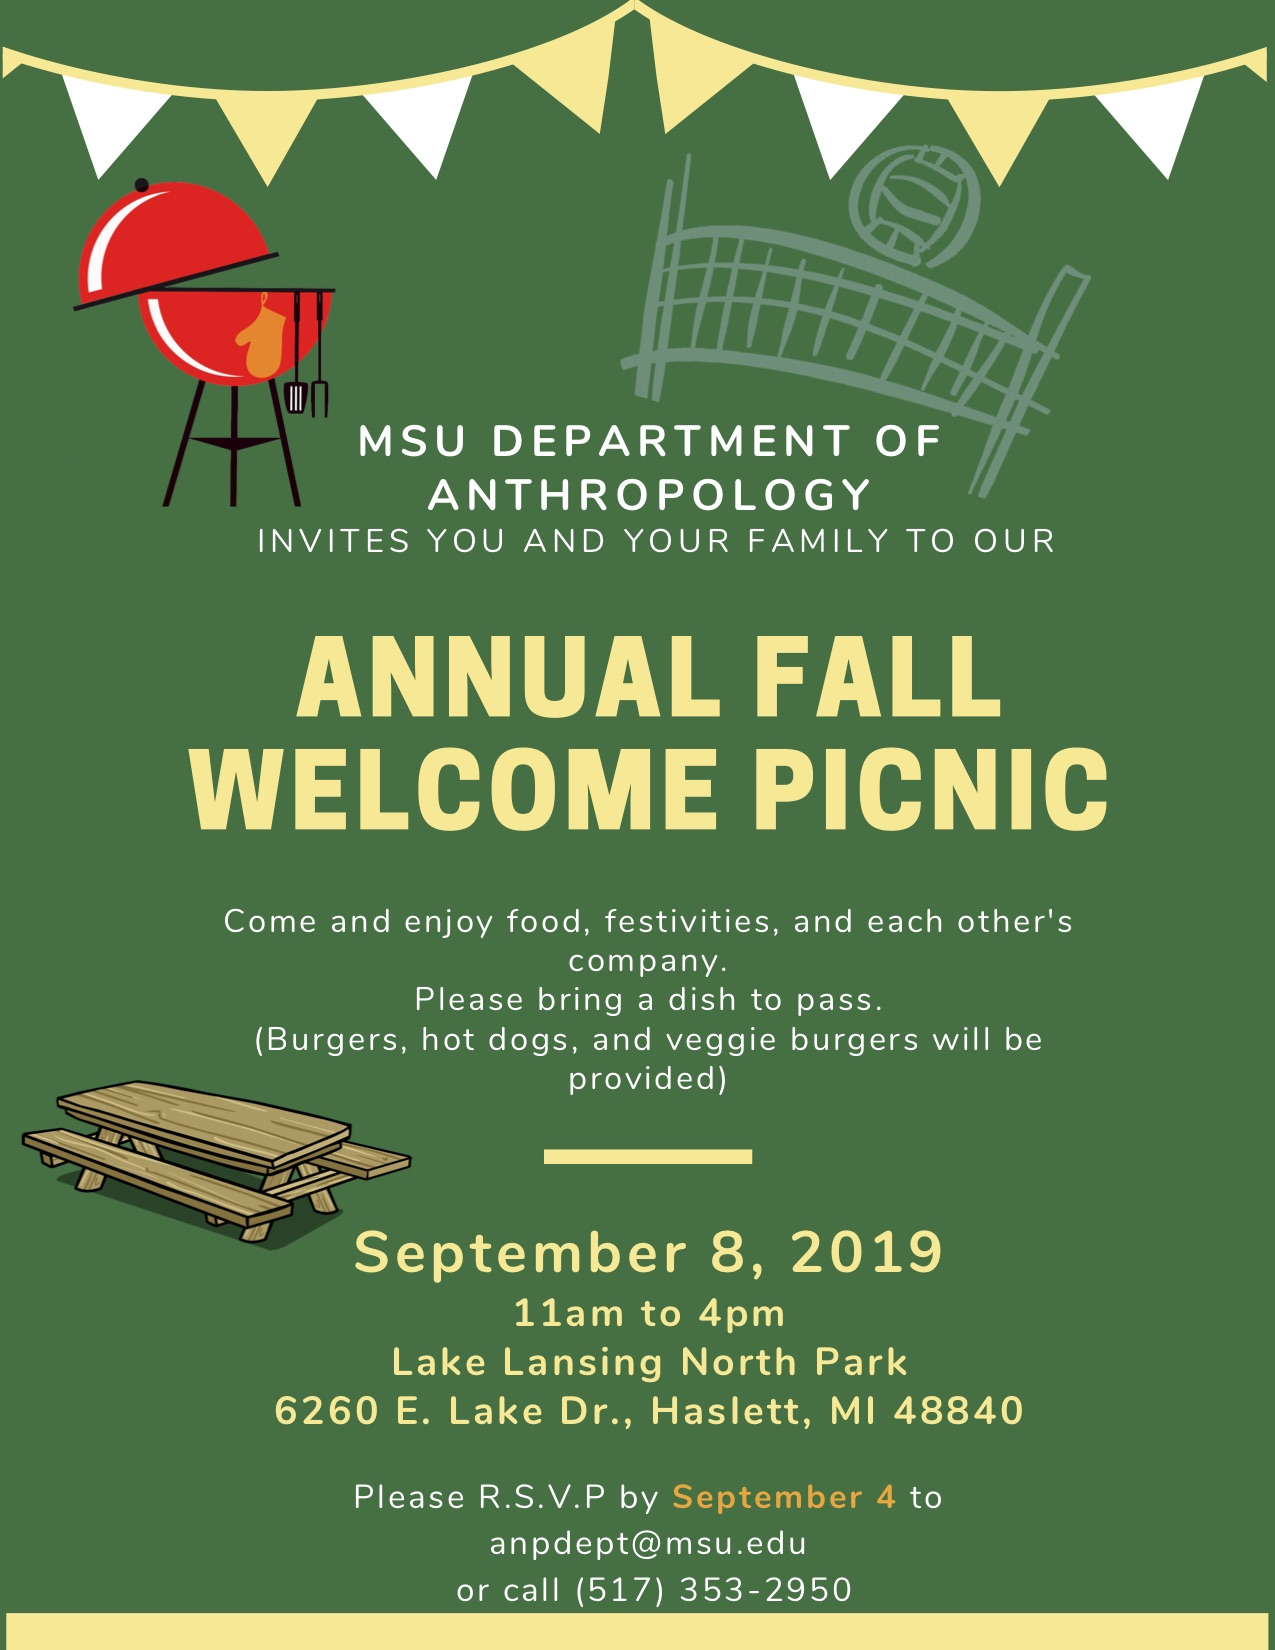 MSU Department of Anthropology Annual Fall Picnic Flyer